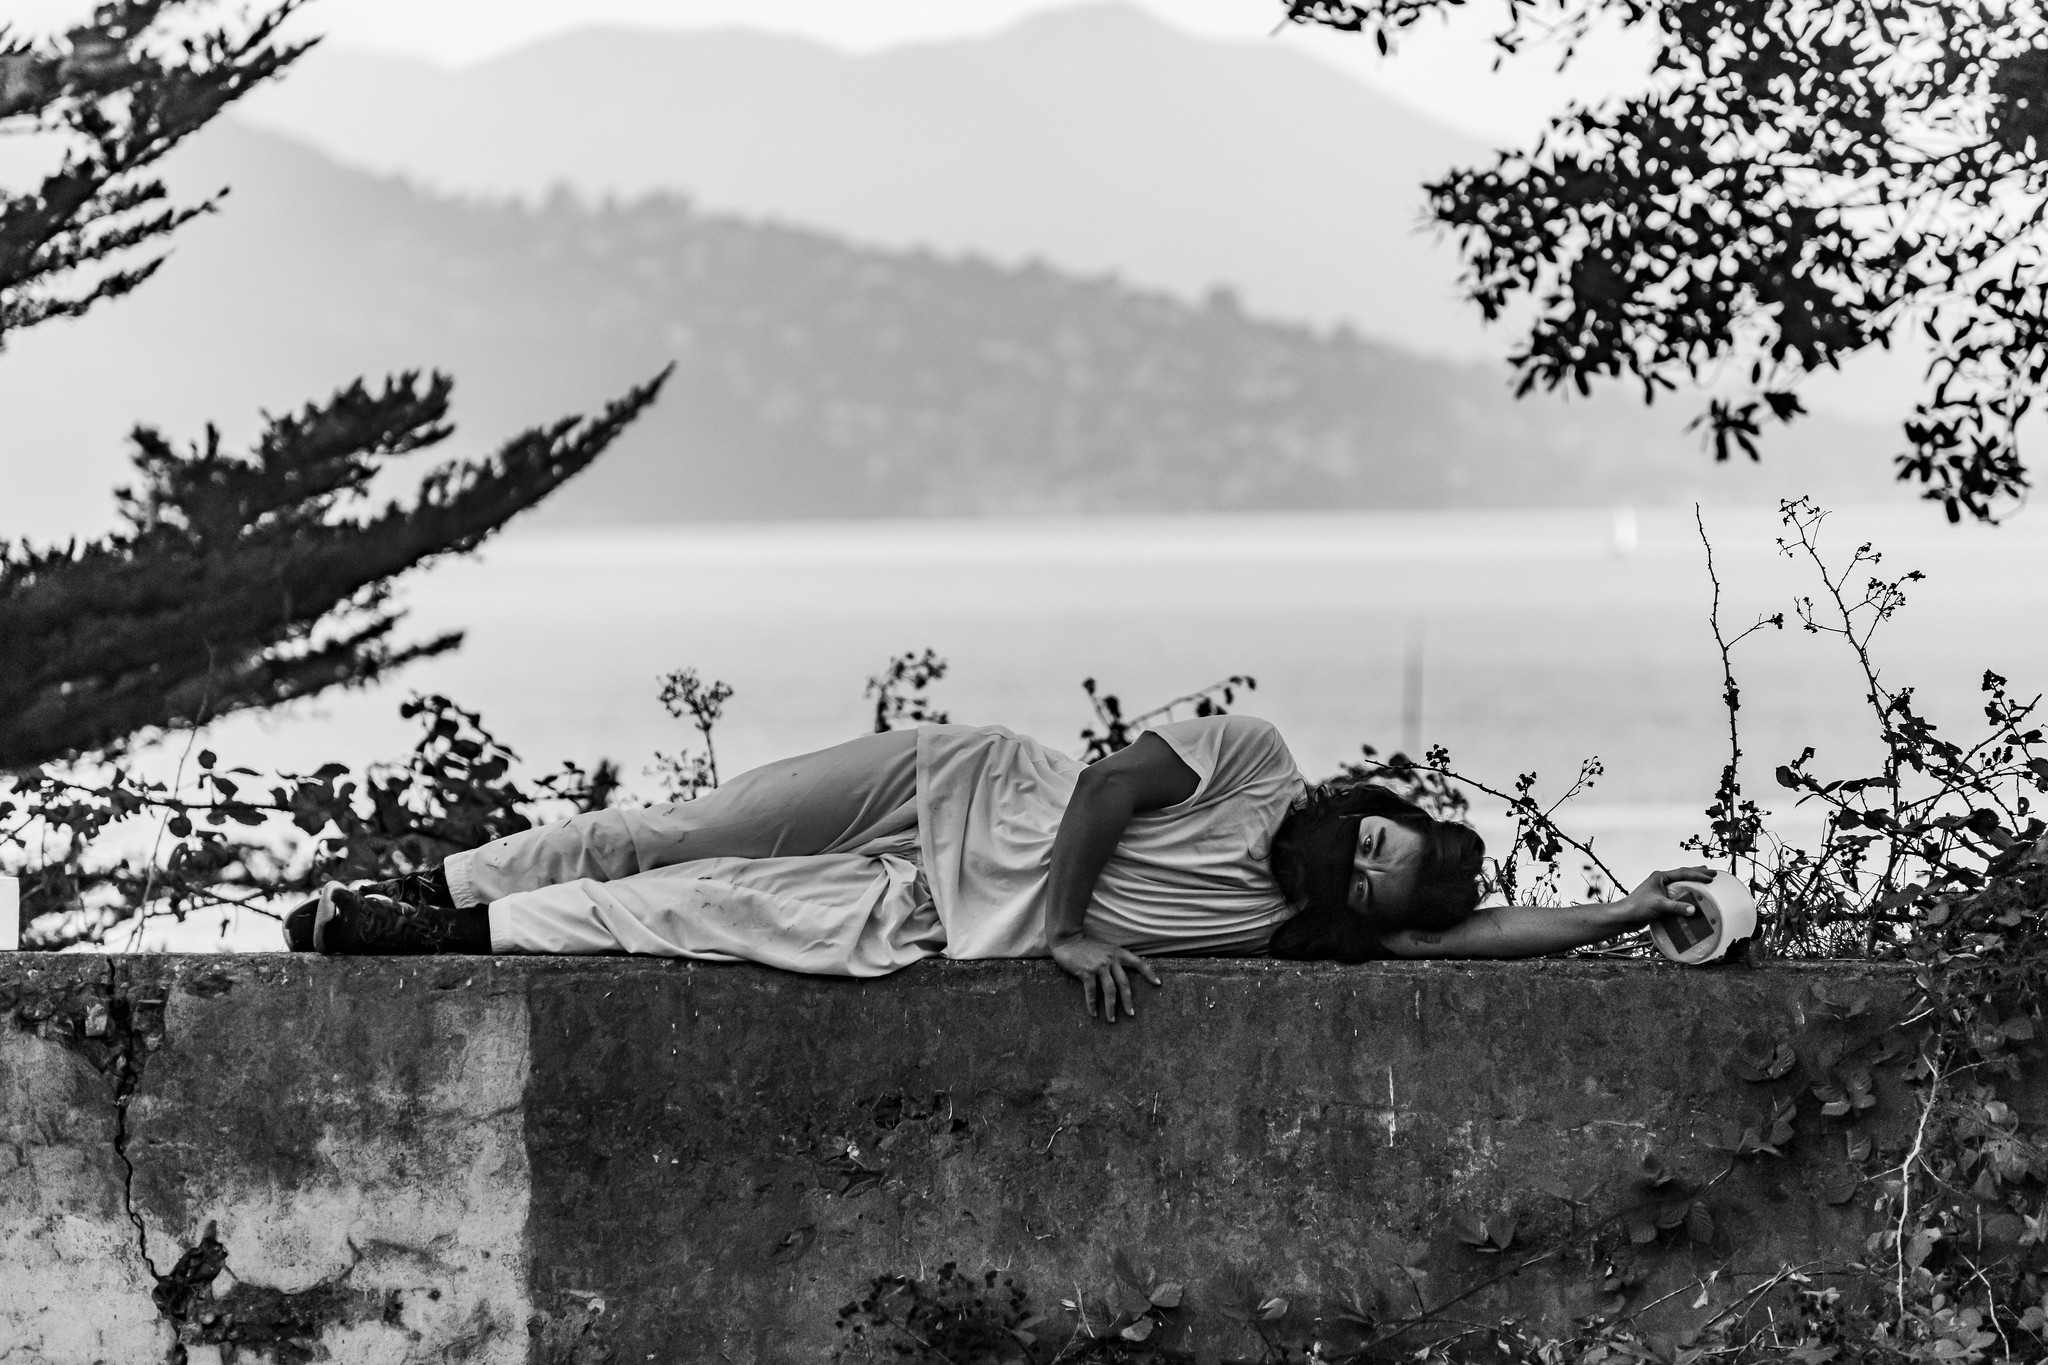 A black and white image of Daria, a mixed race person with long dark hair pulled back, wearing all white, laying on his left side on a cement ledge outside facing the camera. His left arm reaches above his head and holds a solar lantern. His right arm is crossed in front of his body, resting on the ledge in front of his belly button.